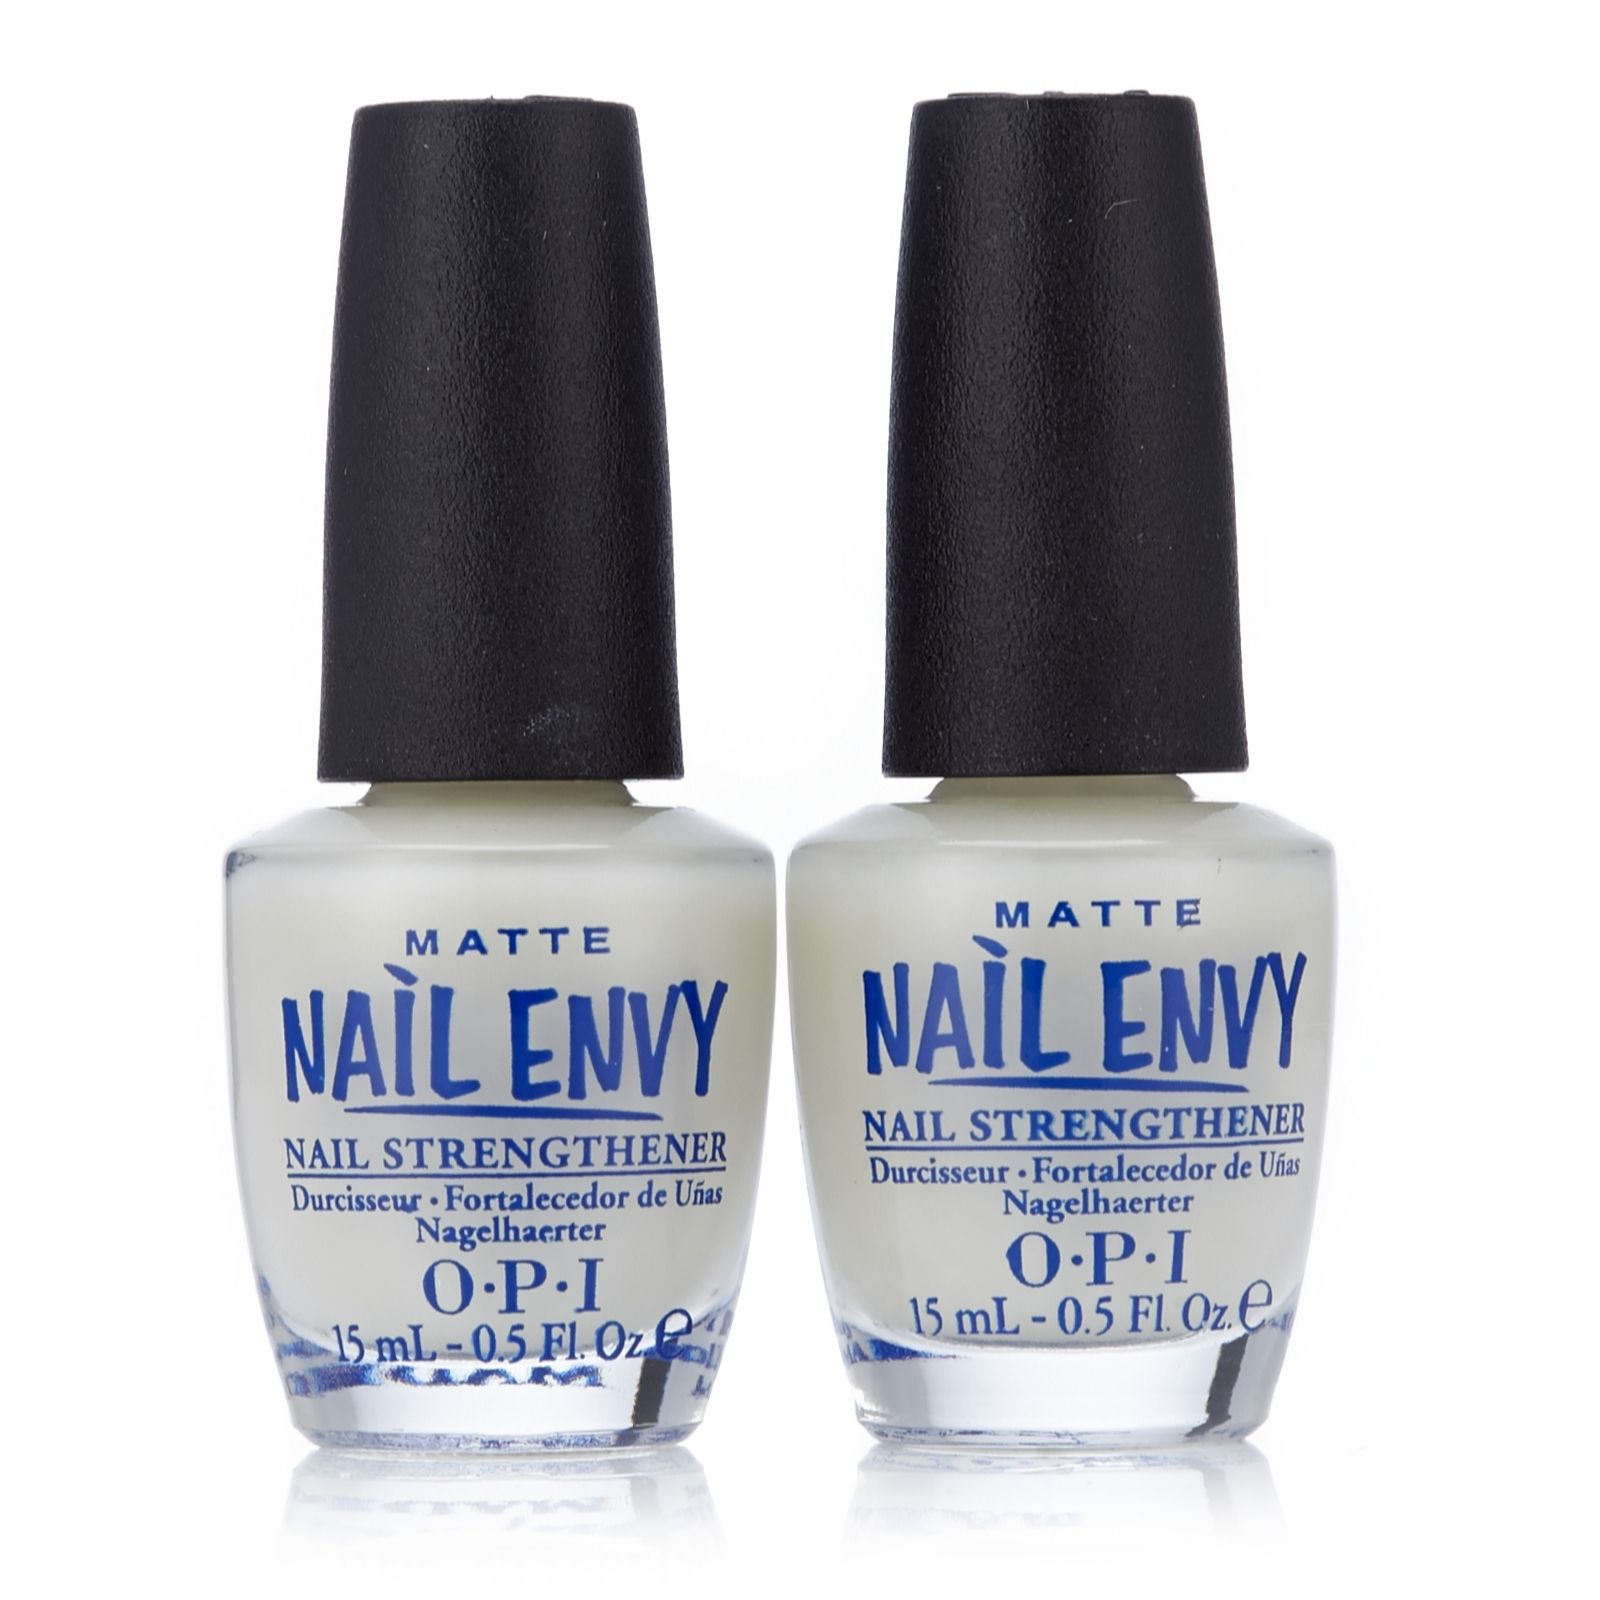 OPI Matte Nail Envy Duo - Page 1 - QVC UK